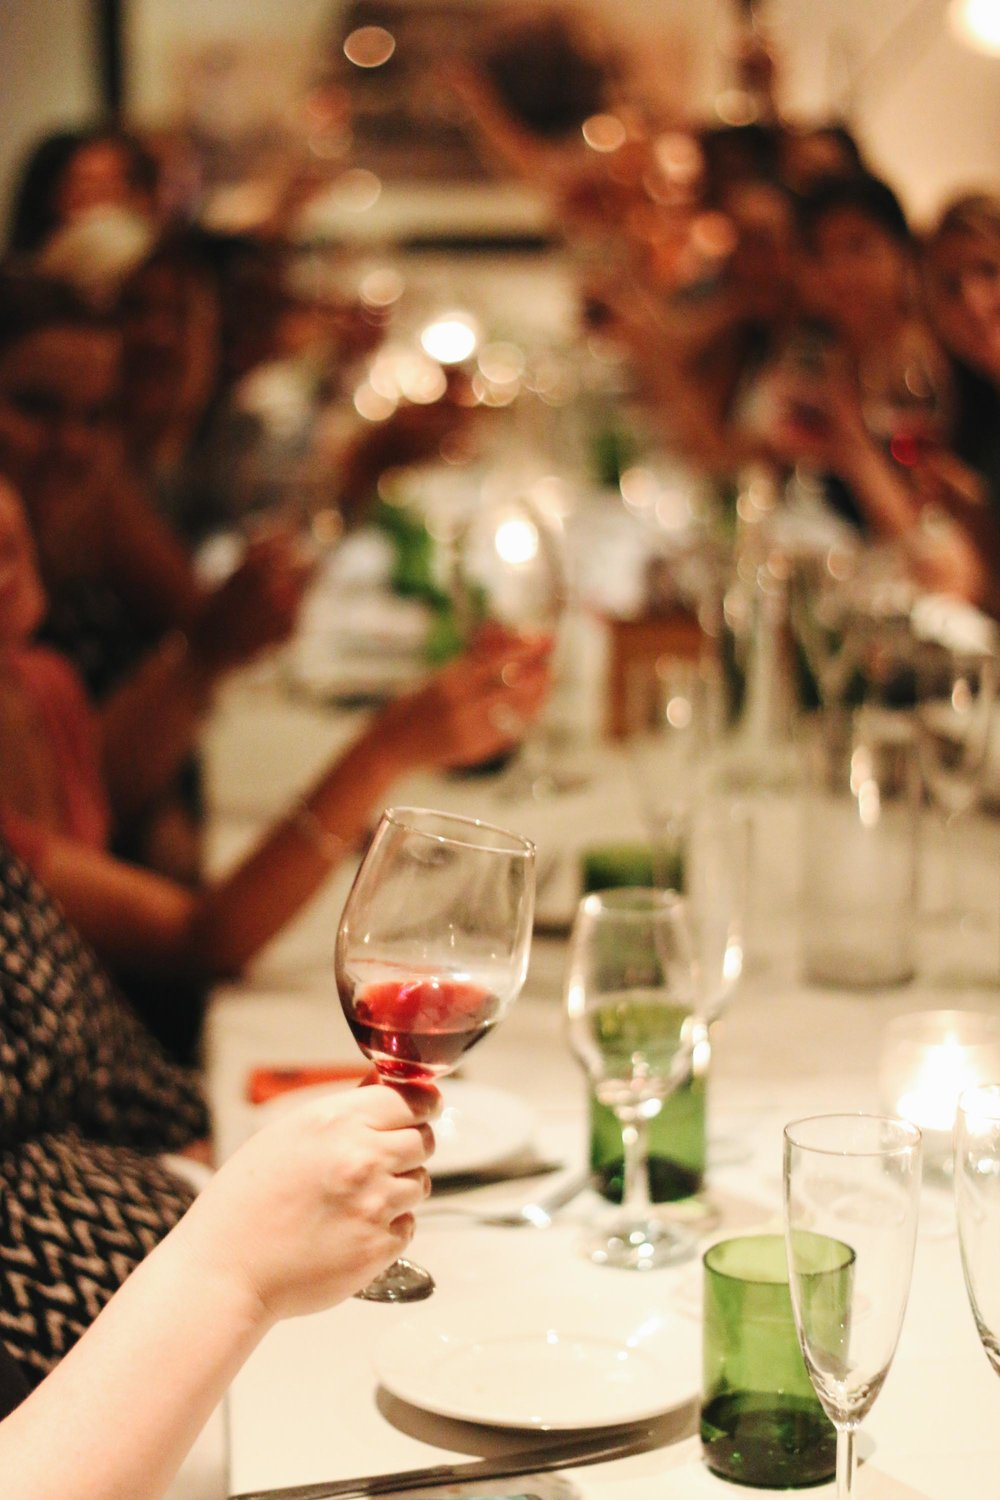 Women Who Wine Uncorked Conversations-Dolores Lolita-Miami Wine Events-Wine Tasting Miami-11.jpg